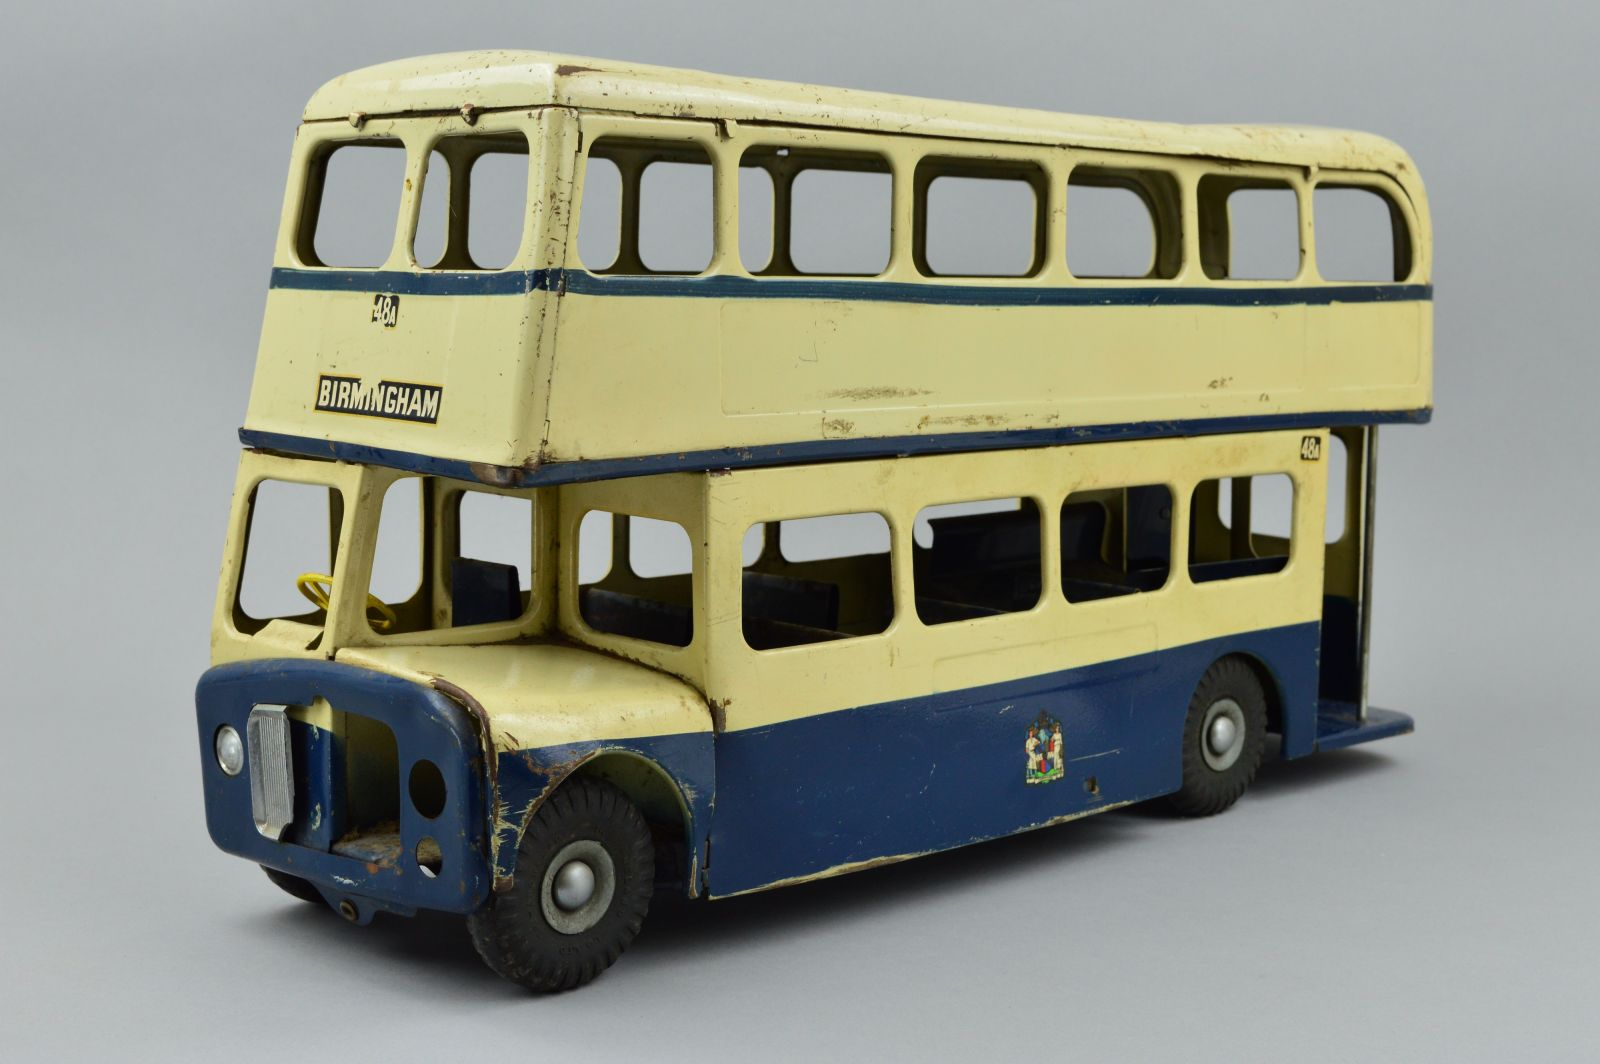 How you can buy your very own classic Birmingham bus – for £300!